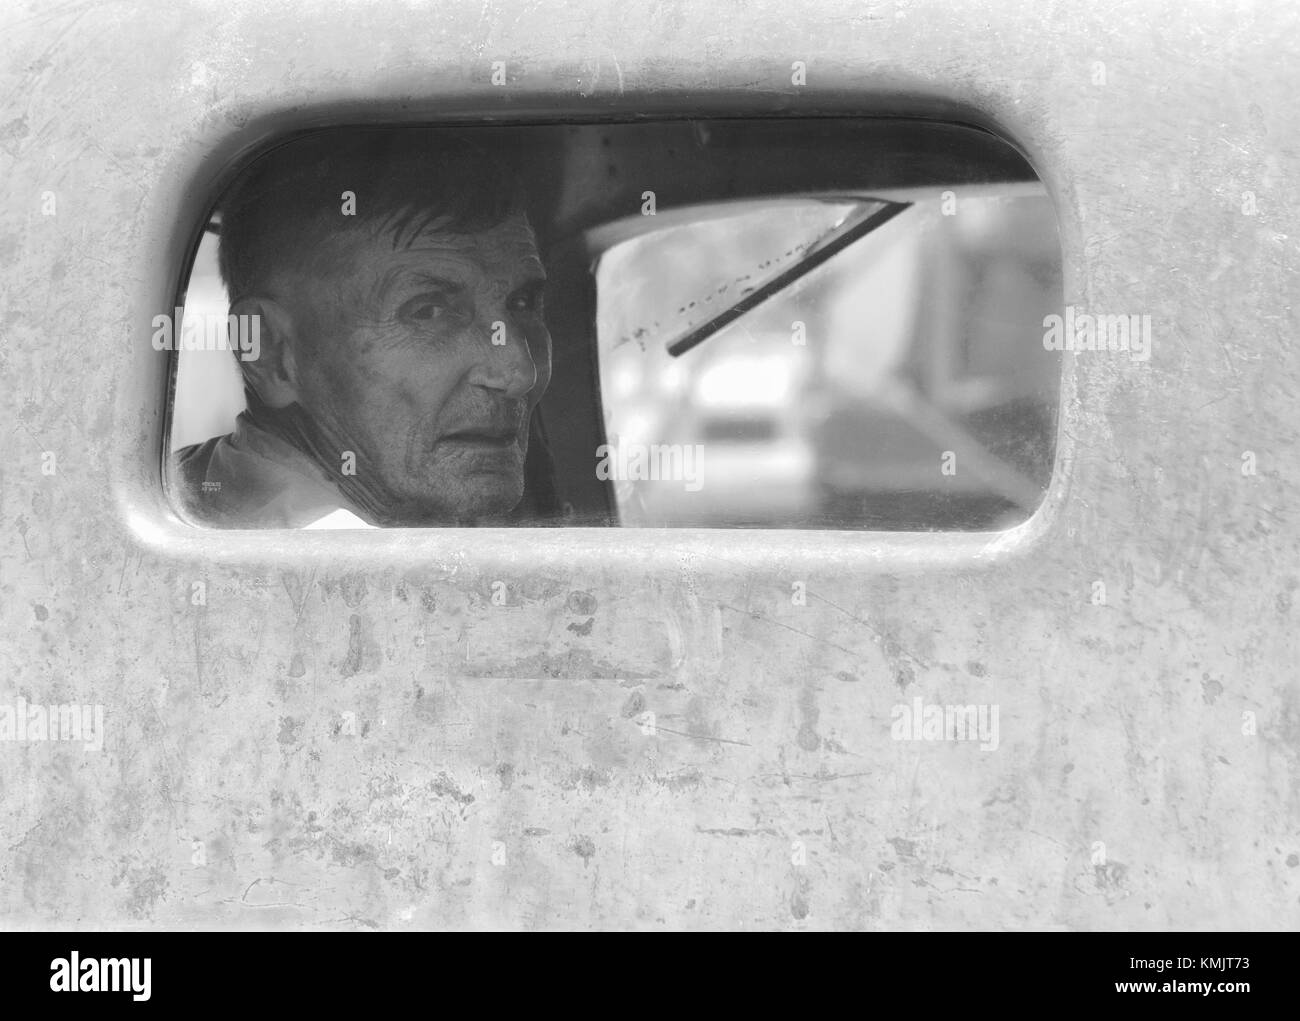 McMinnville, Oregon, USA - August 13, 2016:  An elderly man looks out the rear window of an old truck at Yamhill - Stock Image